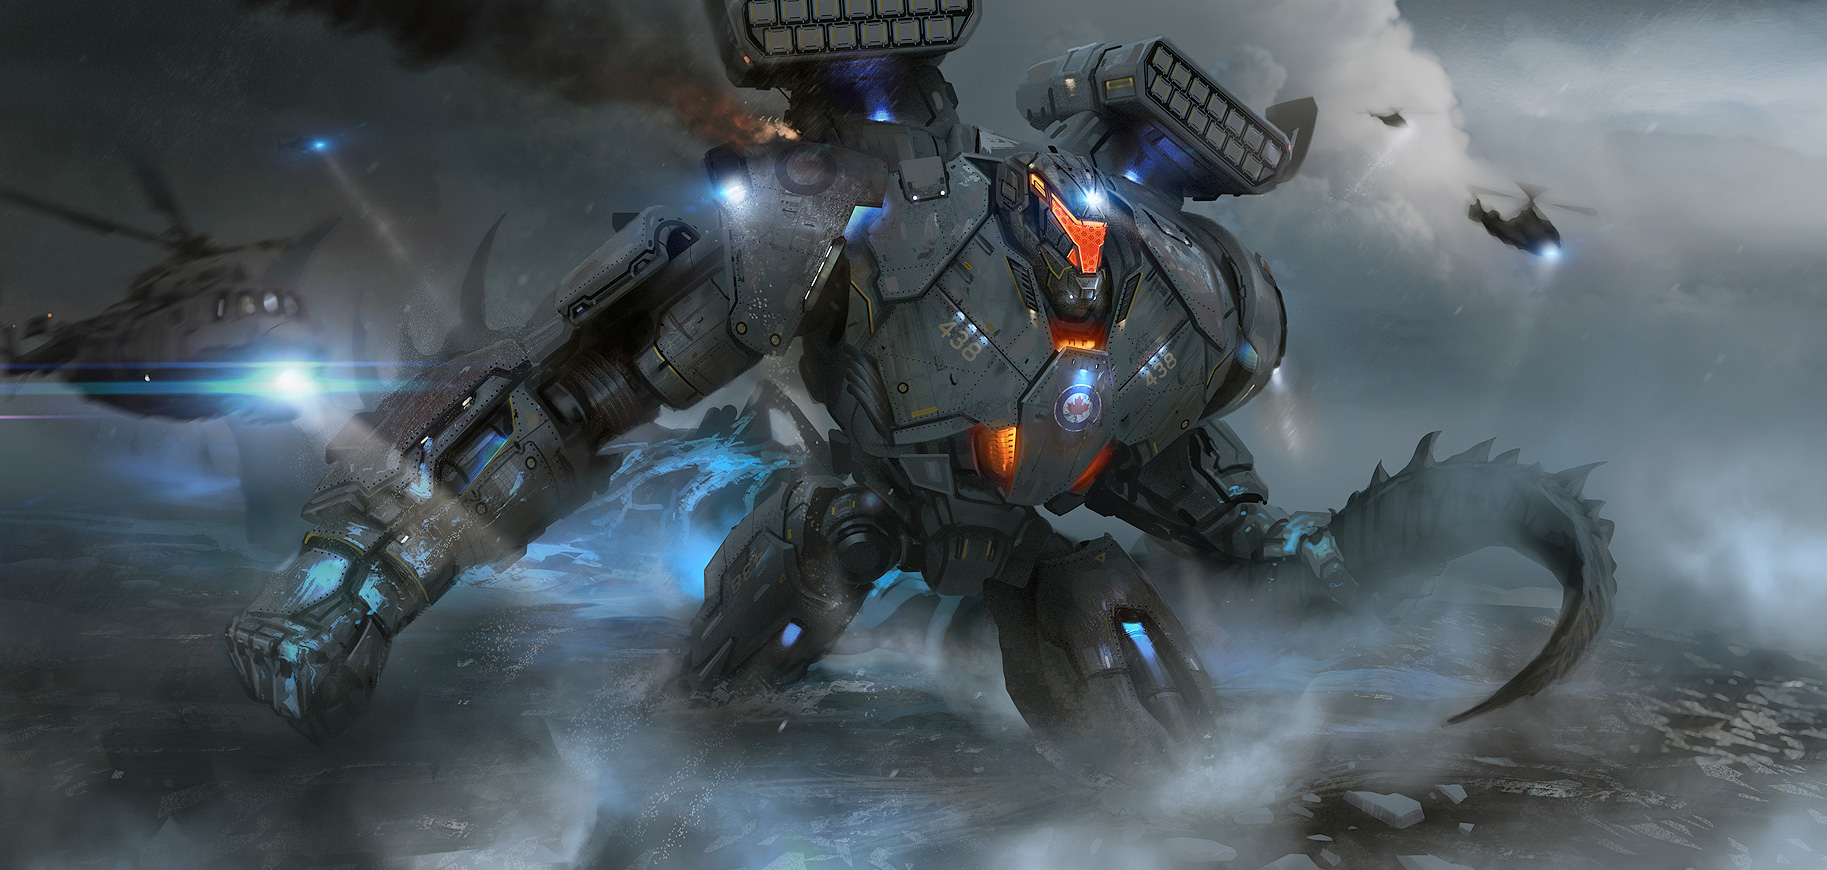 DEFENDER OF WORLDS - Chris Haigh | Huge Cinematic Epic ... Pacific Rim Concept Art Pilot